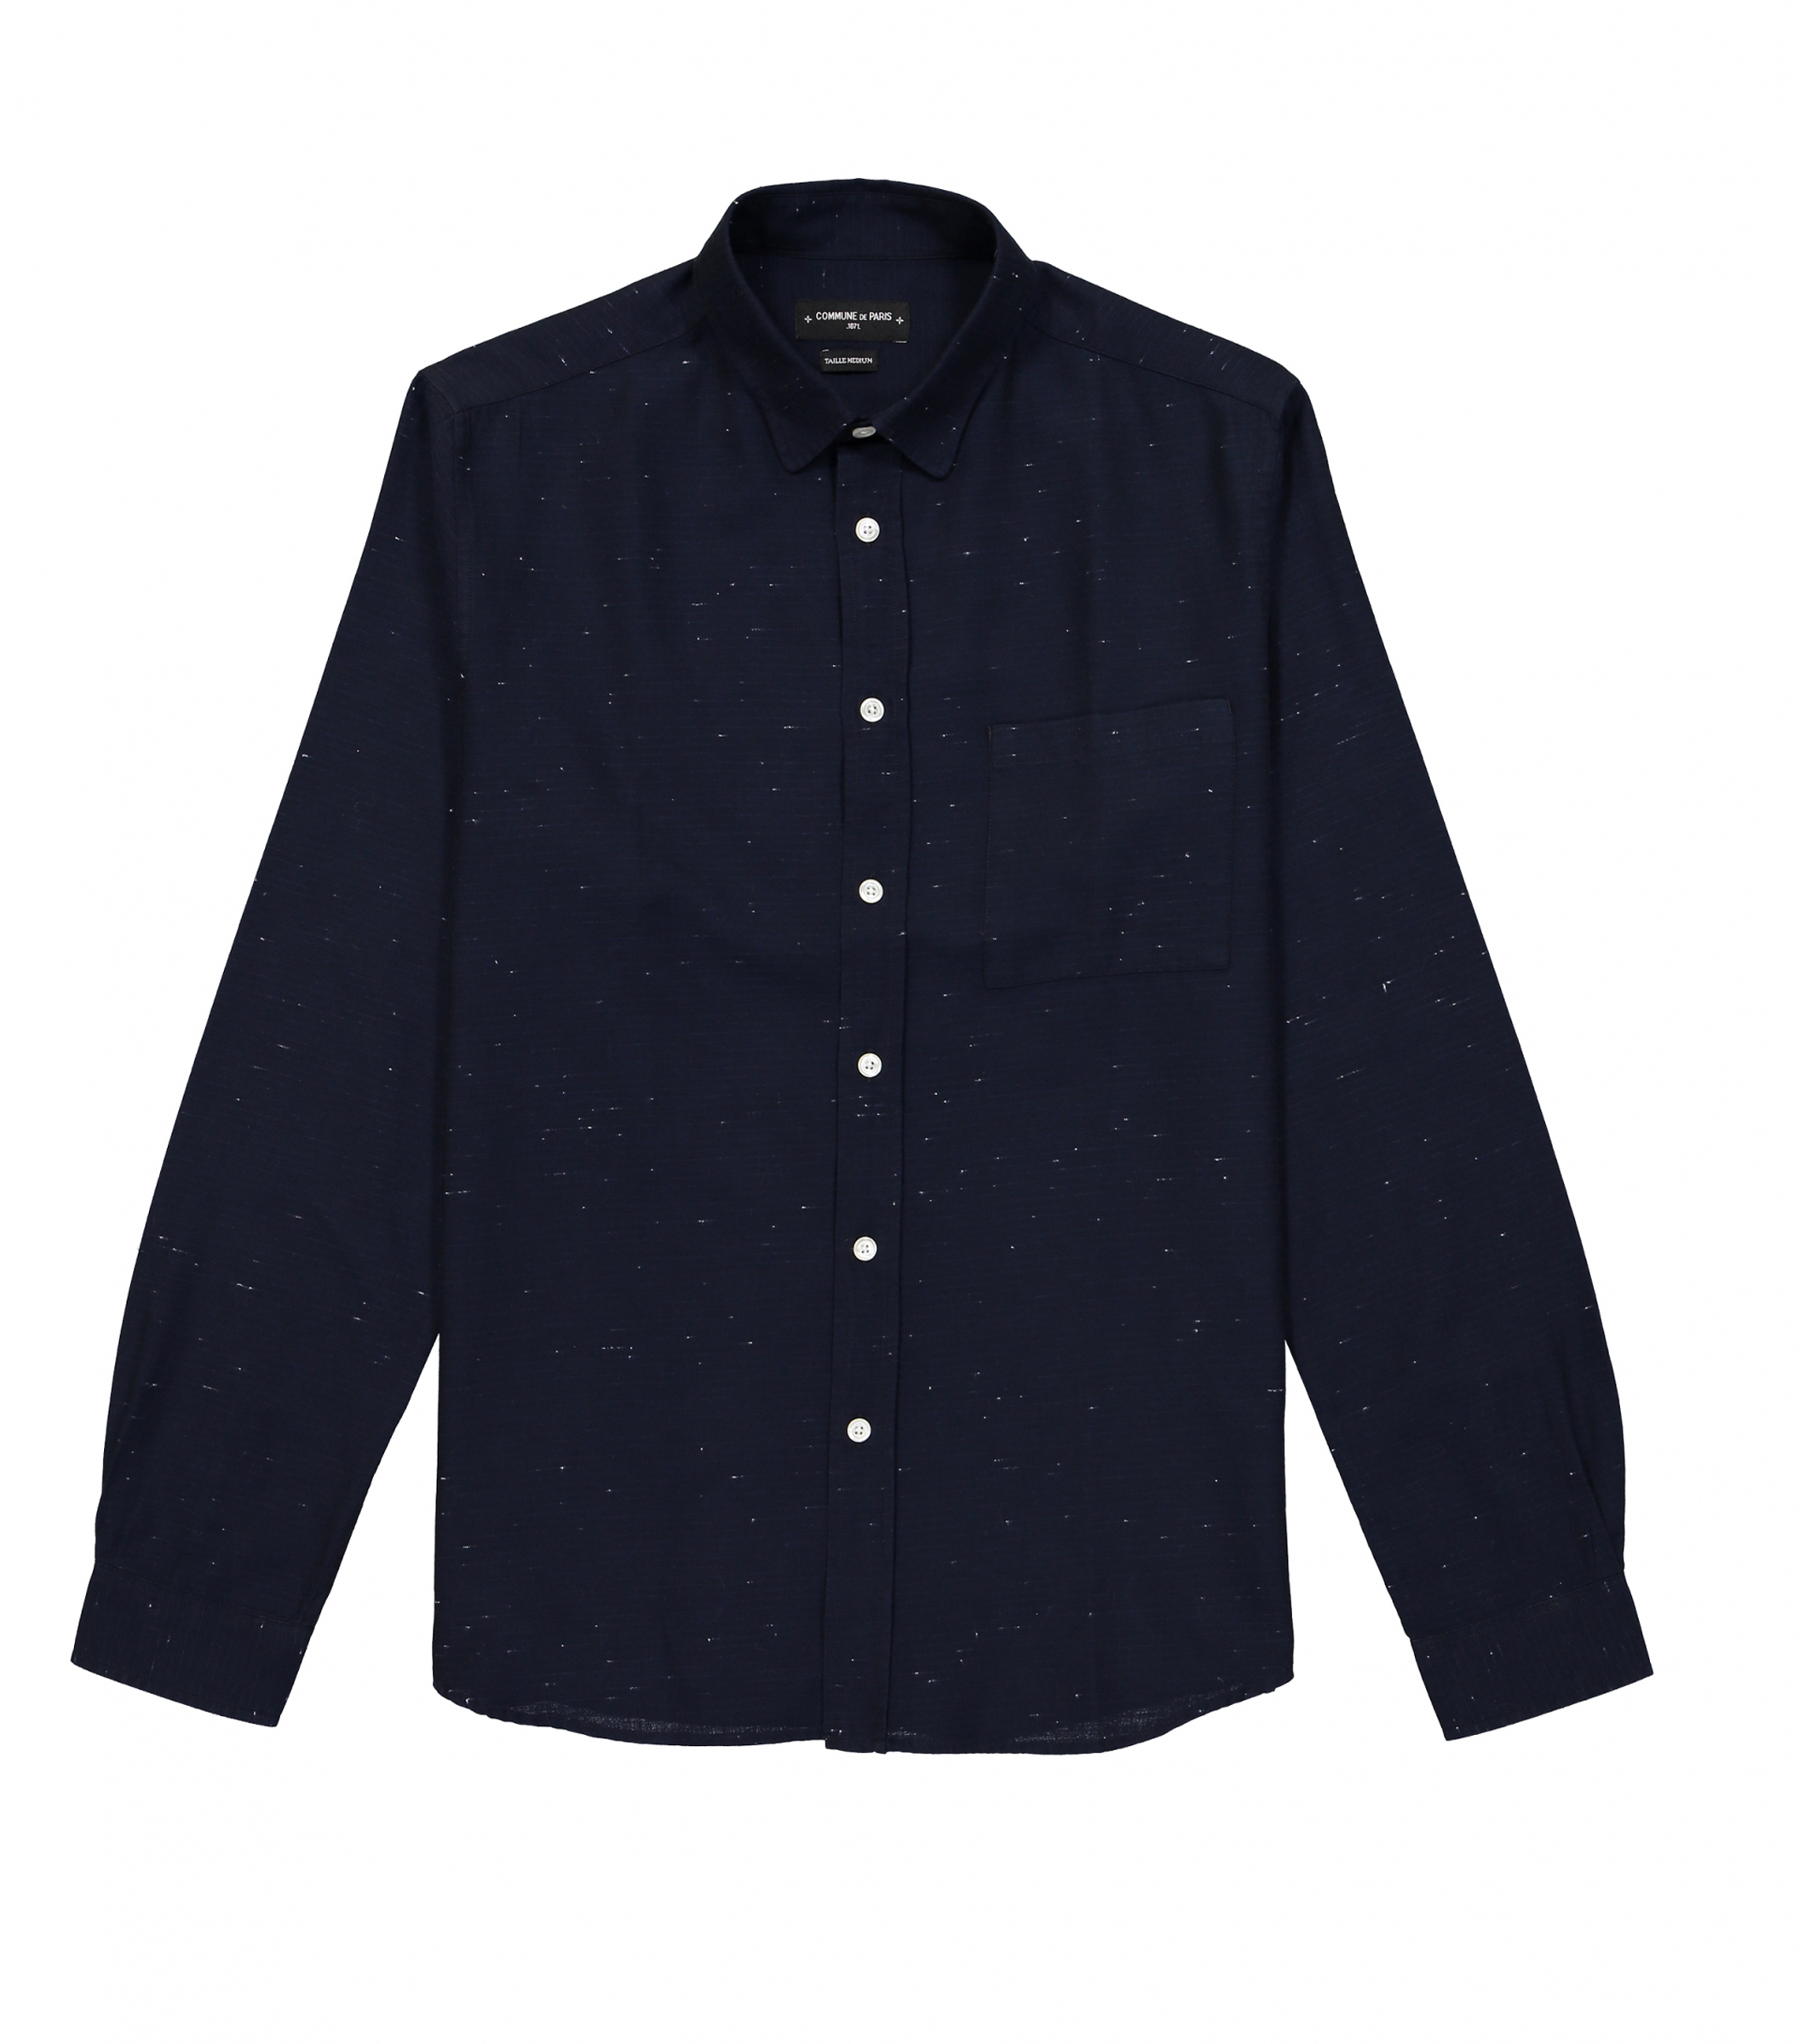 SHIRT ROSSEL - Navy